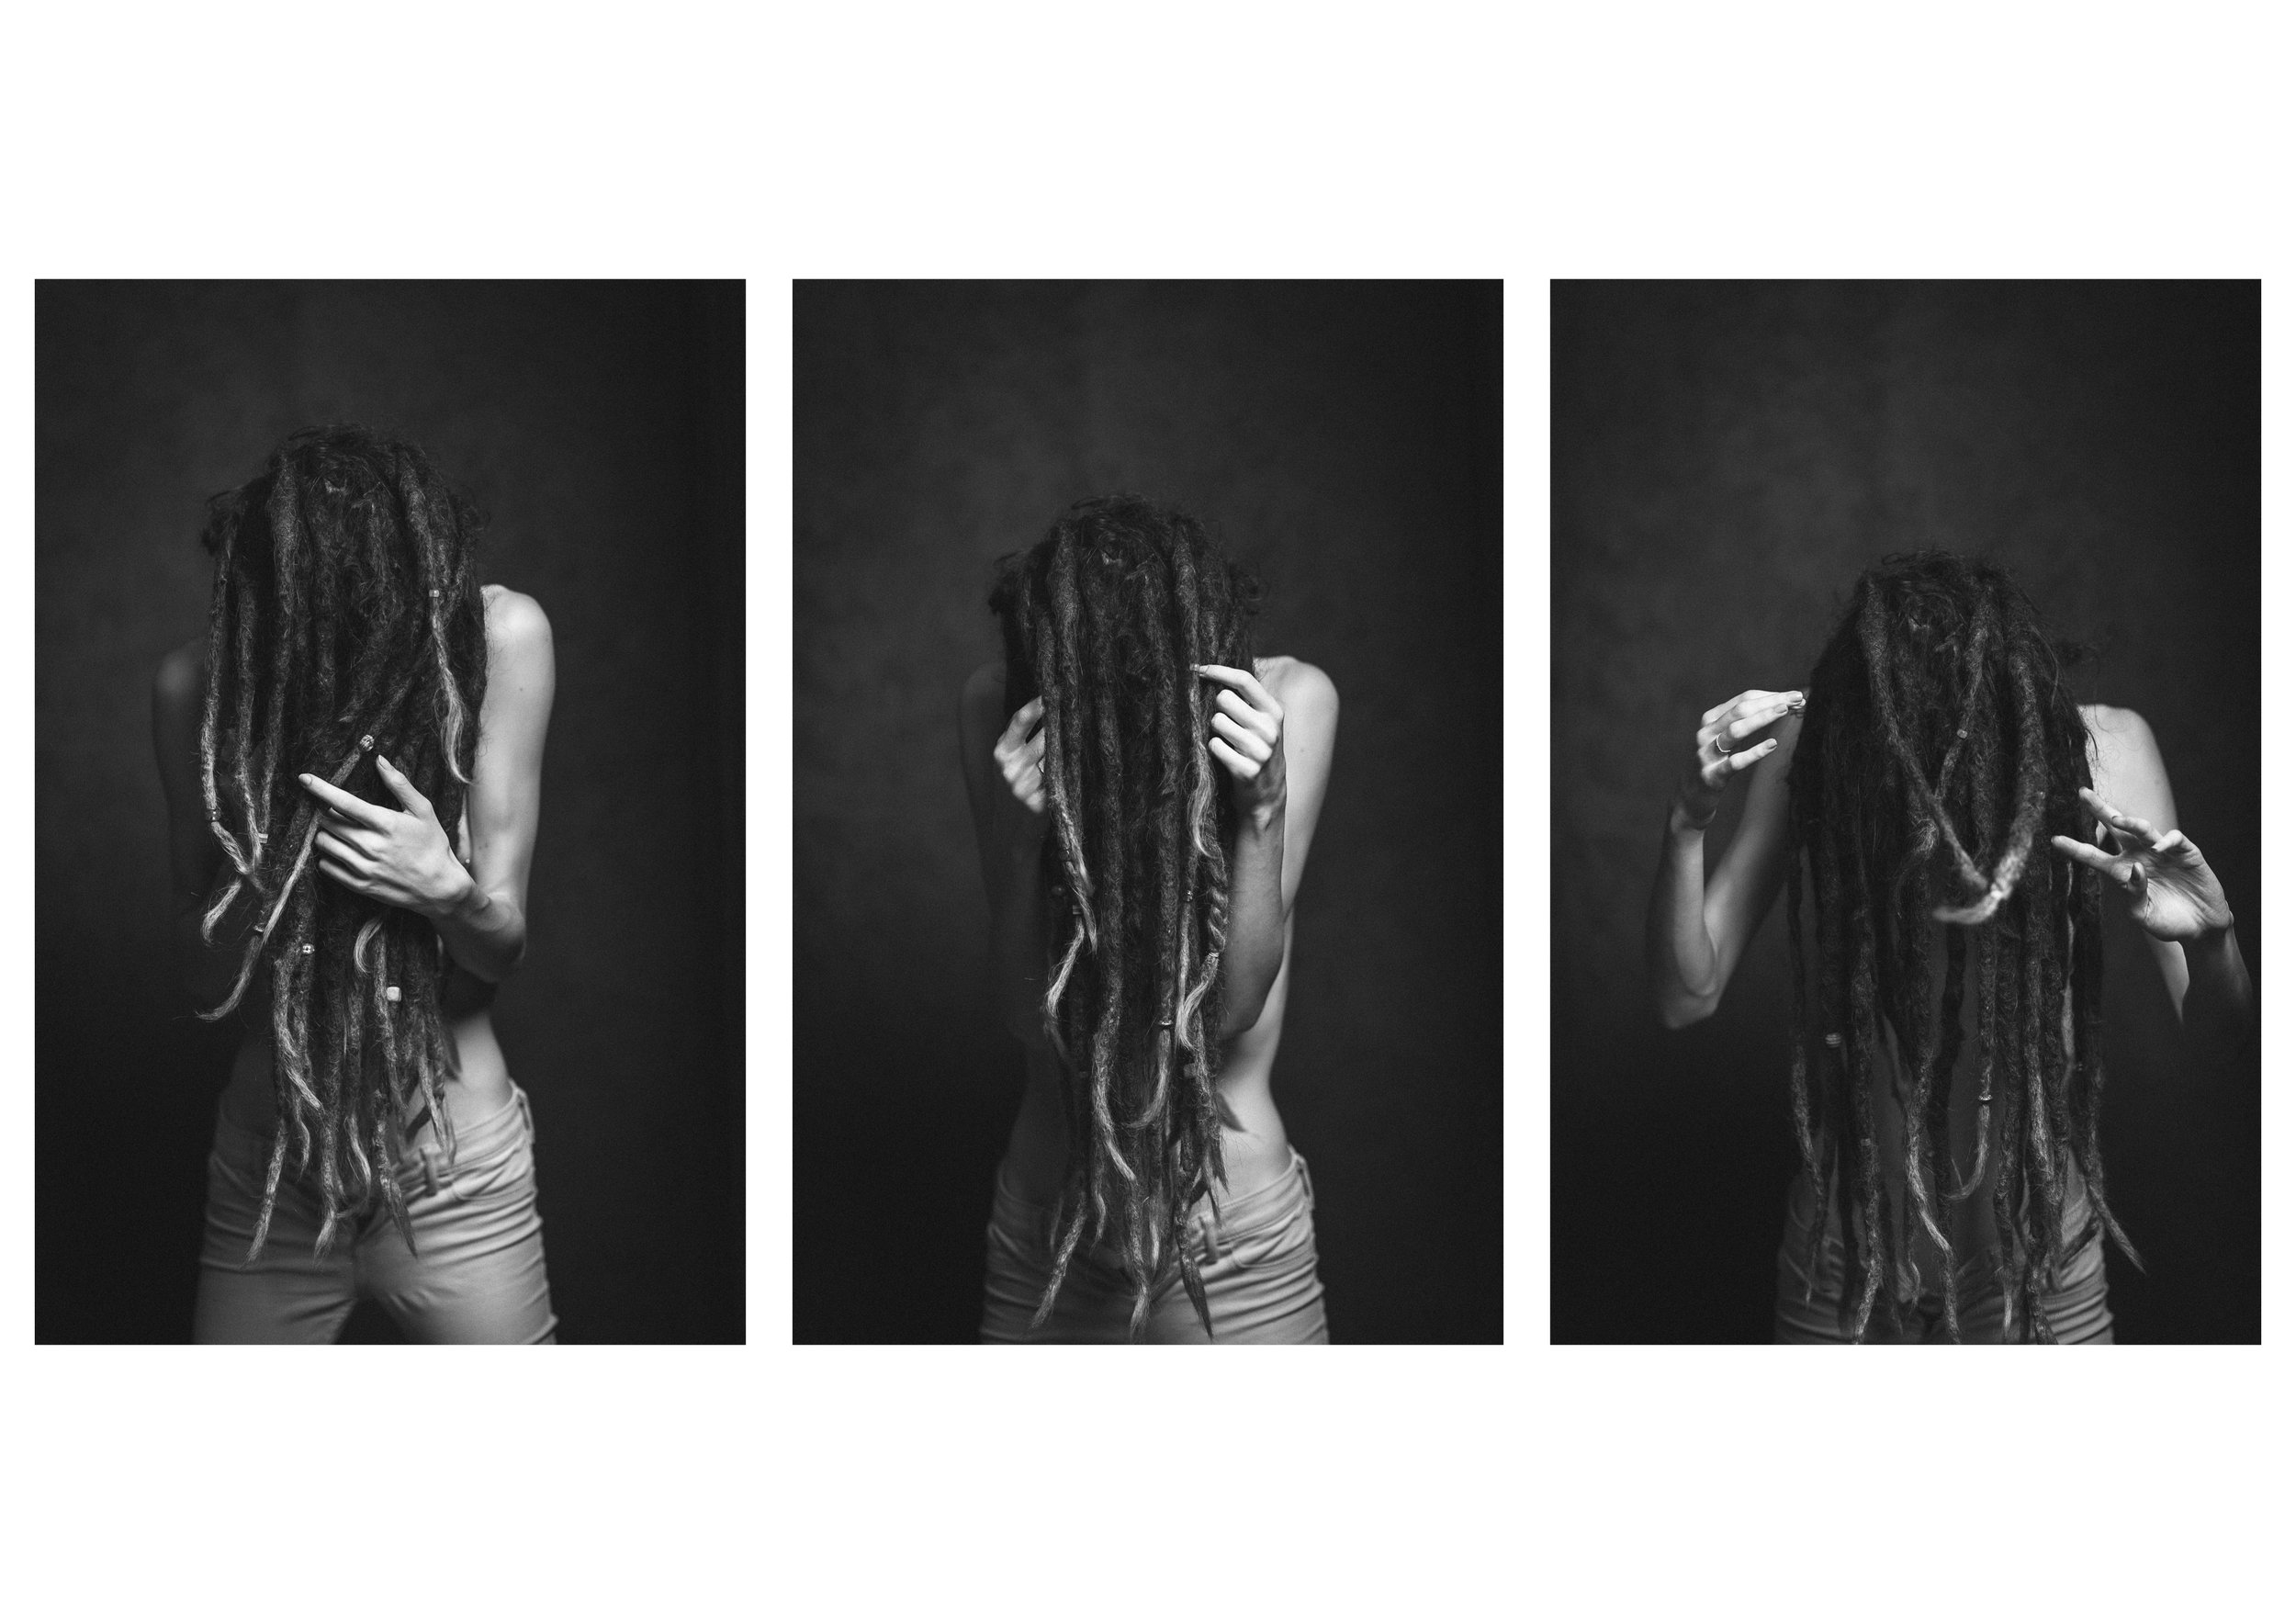 Jess, with dreads